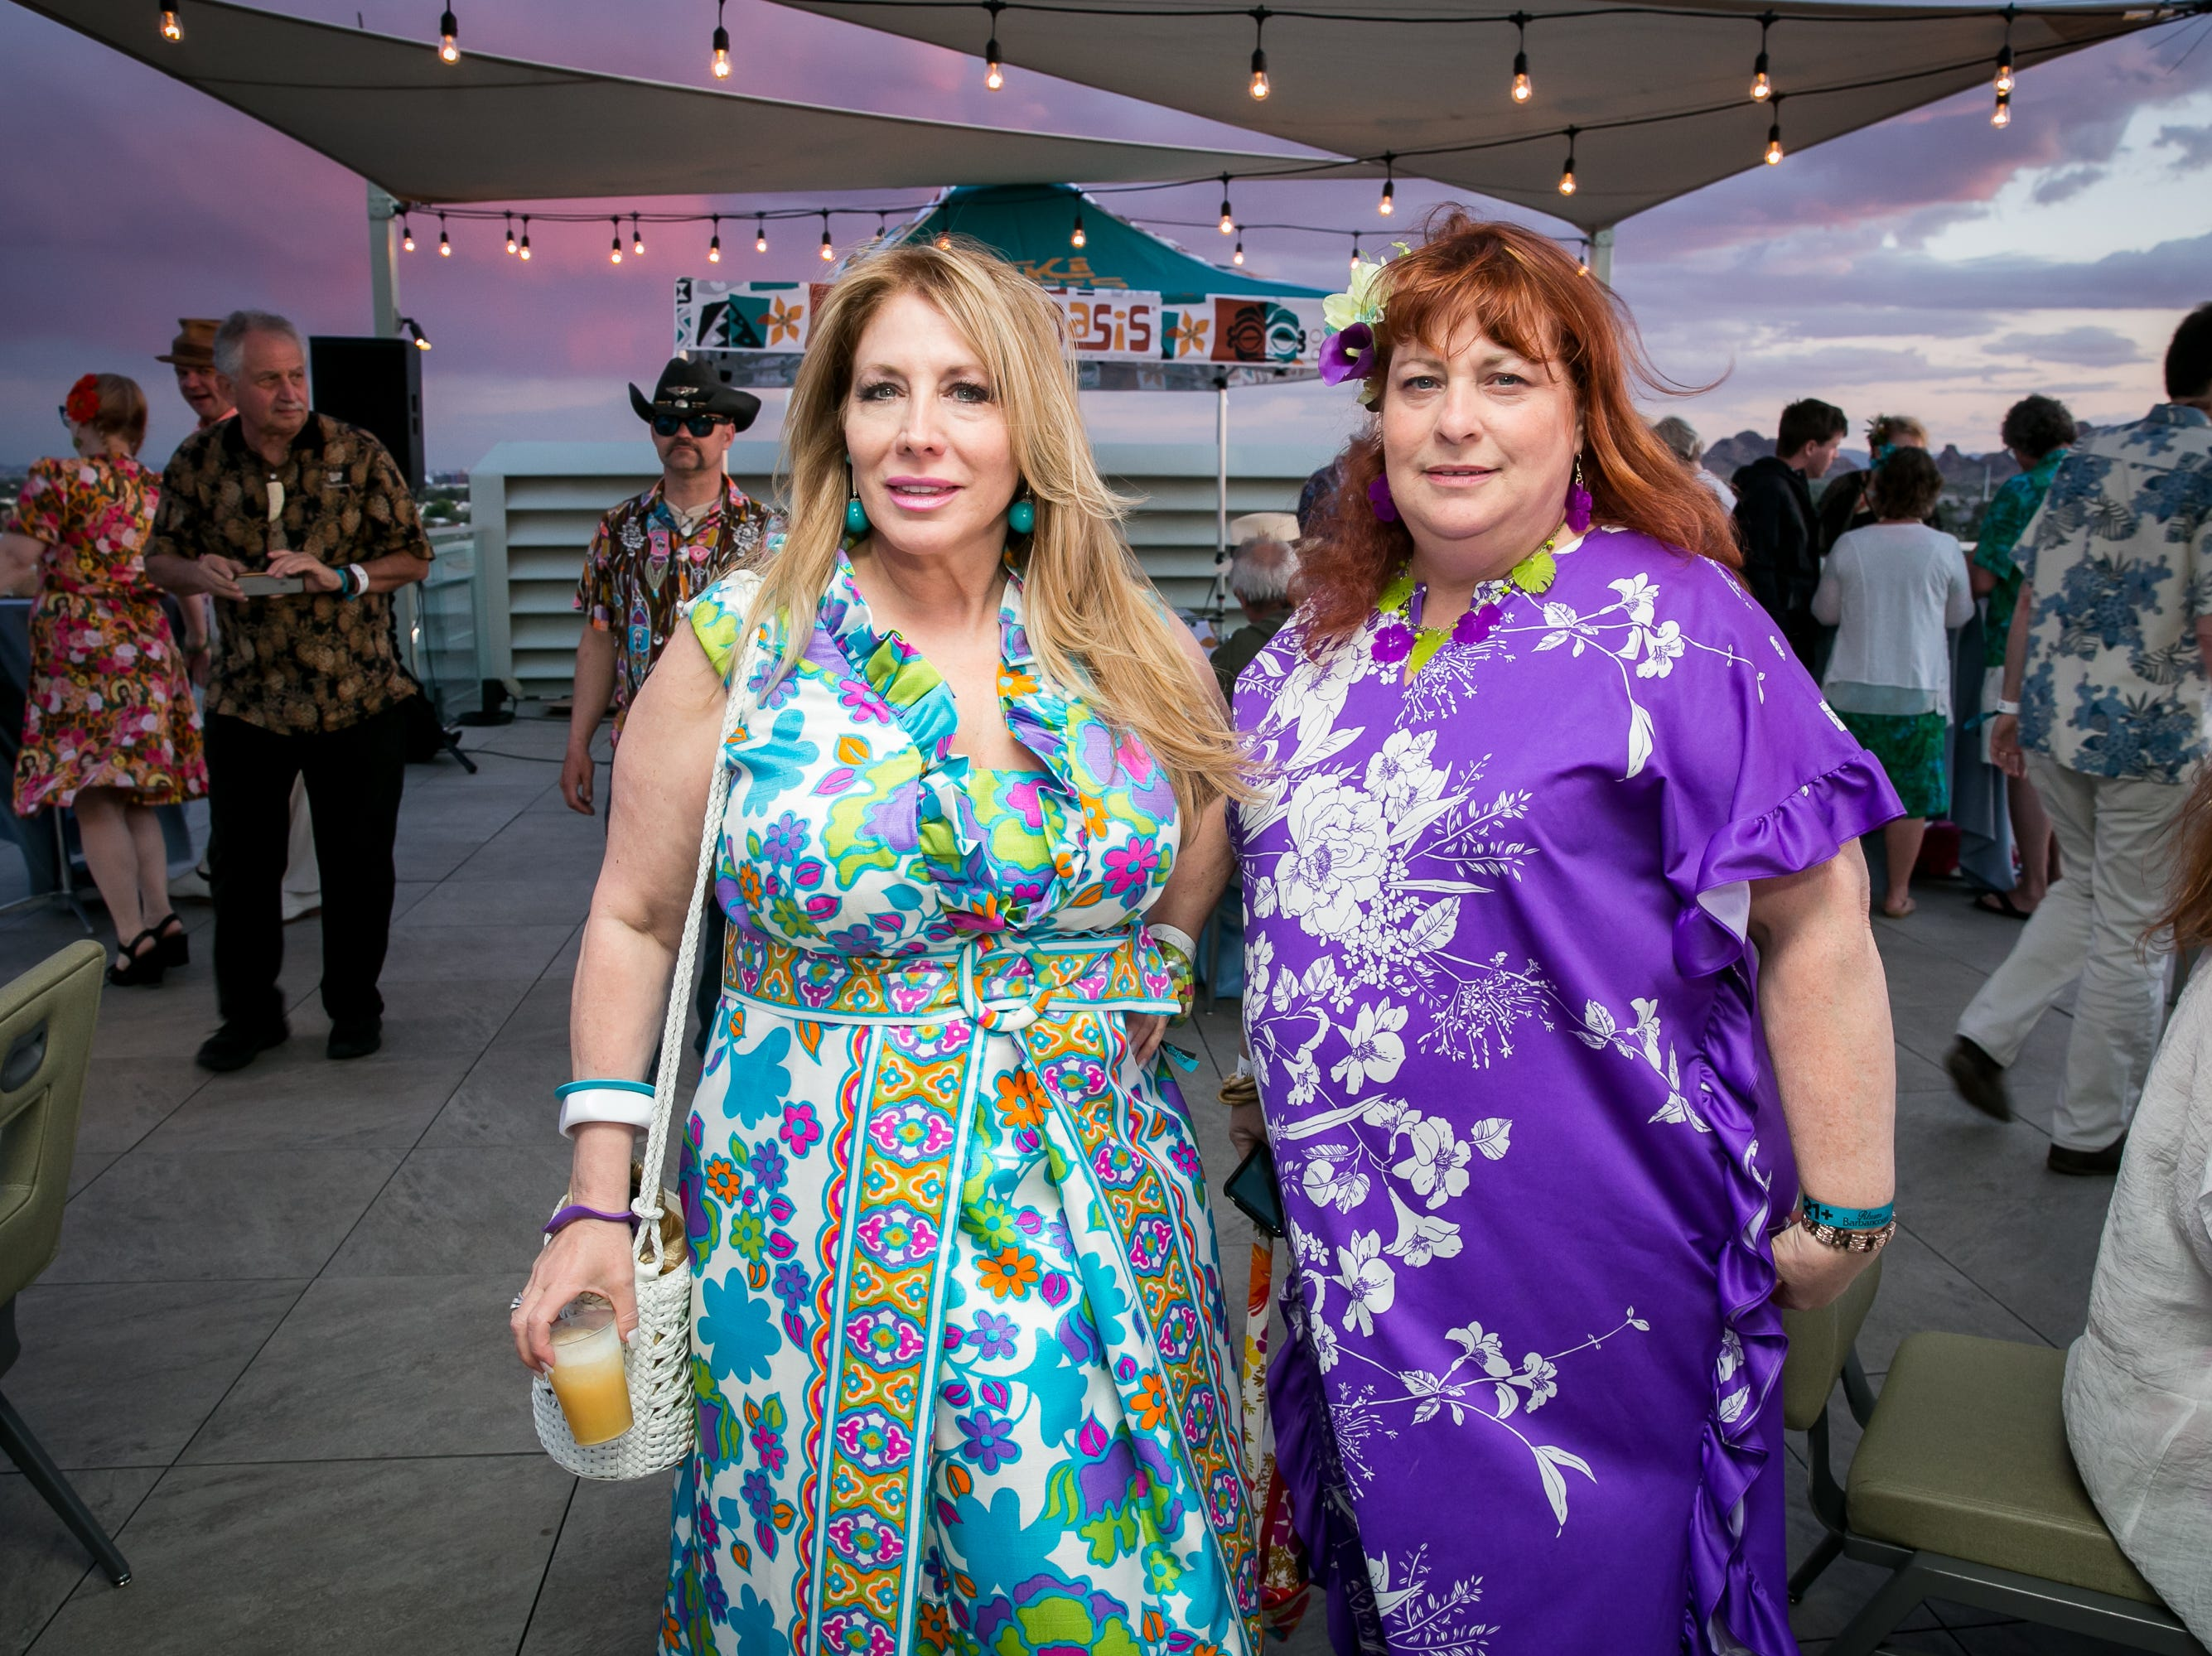 These ladies looked amazing and colorful during Arizona Tiki Oasis at Hotel Valley Ho in Scottsdale on April 12, 2019.